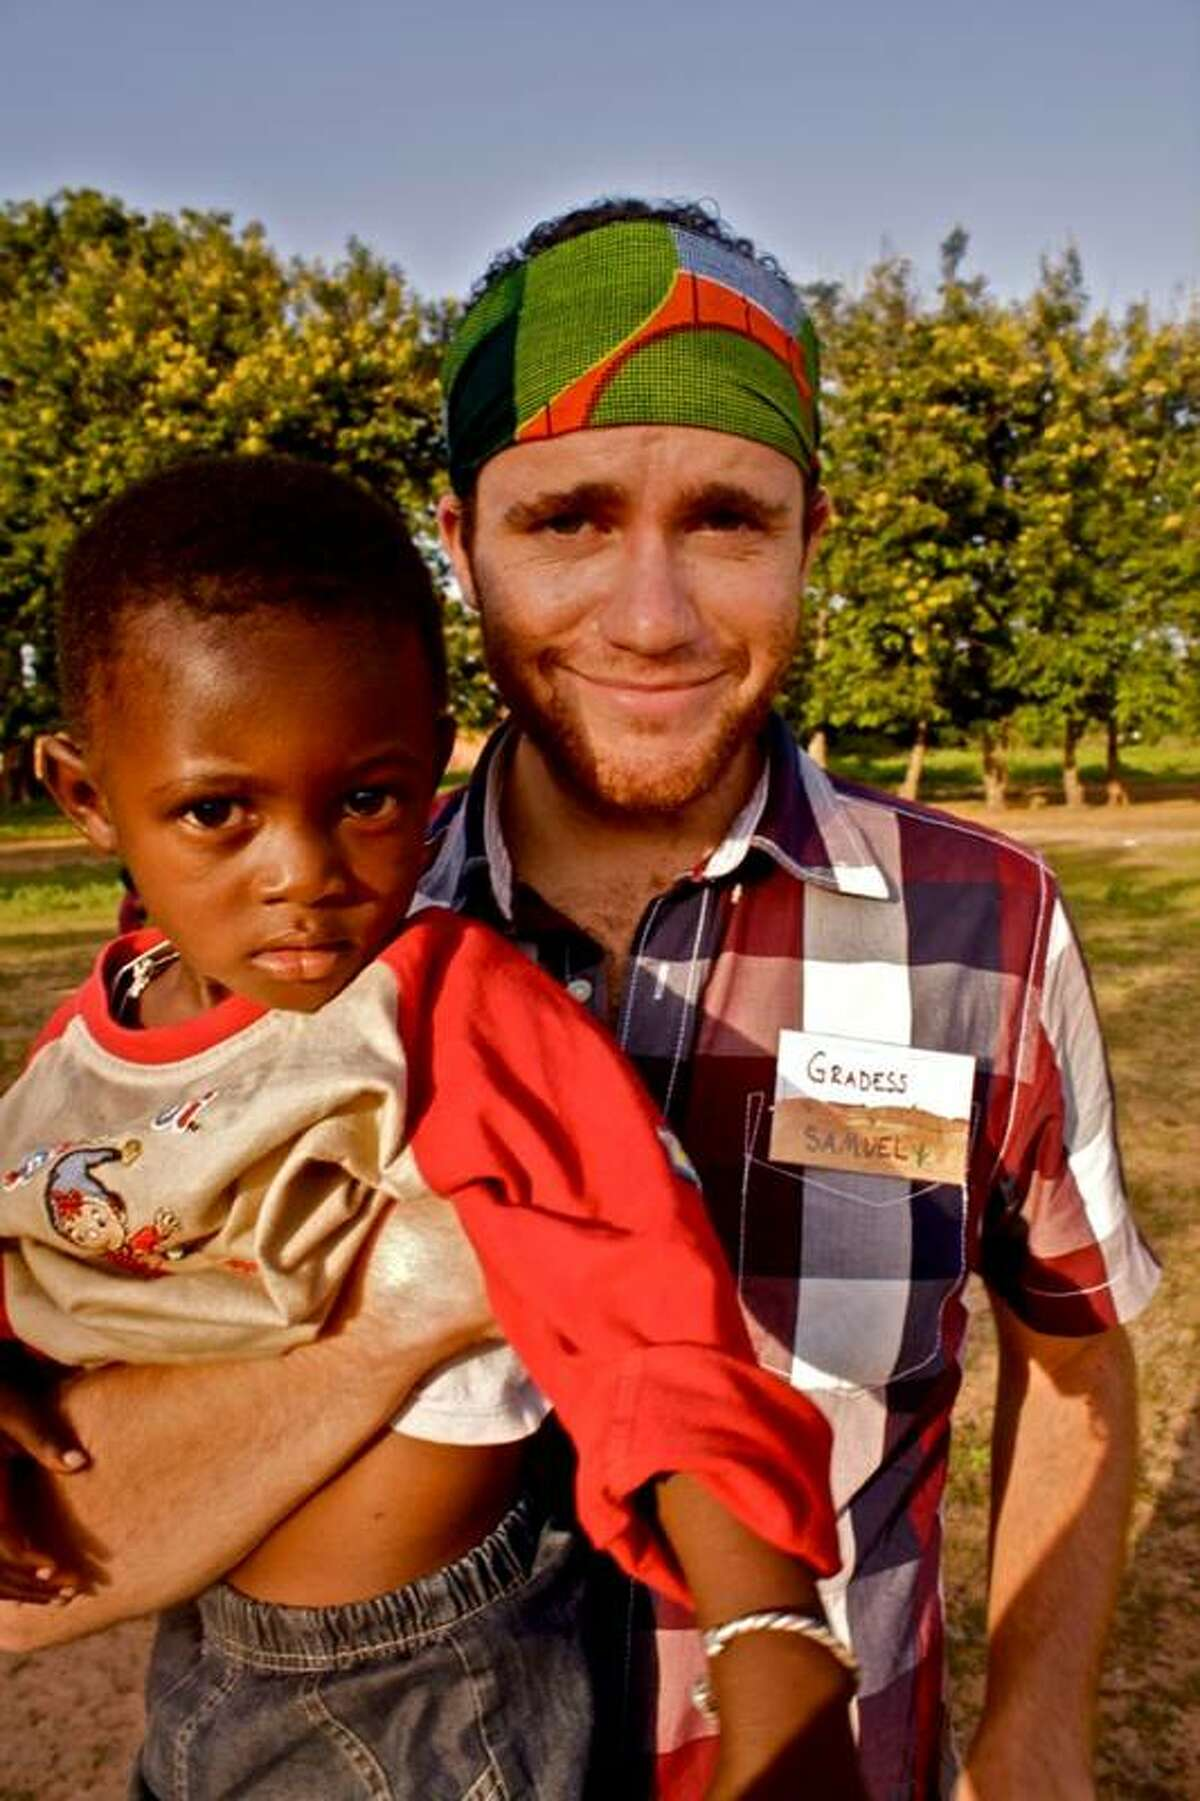 Sam Gradess is currently part of the United States Peace Corps, volunteering in Burkina Faso, Africa. (Courtesy of Jeff Brown)